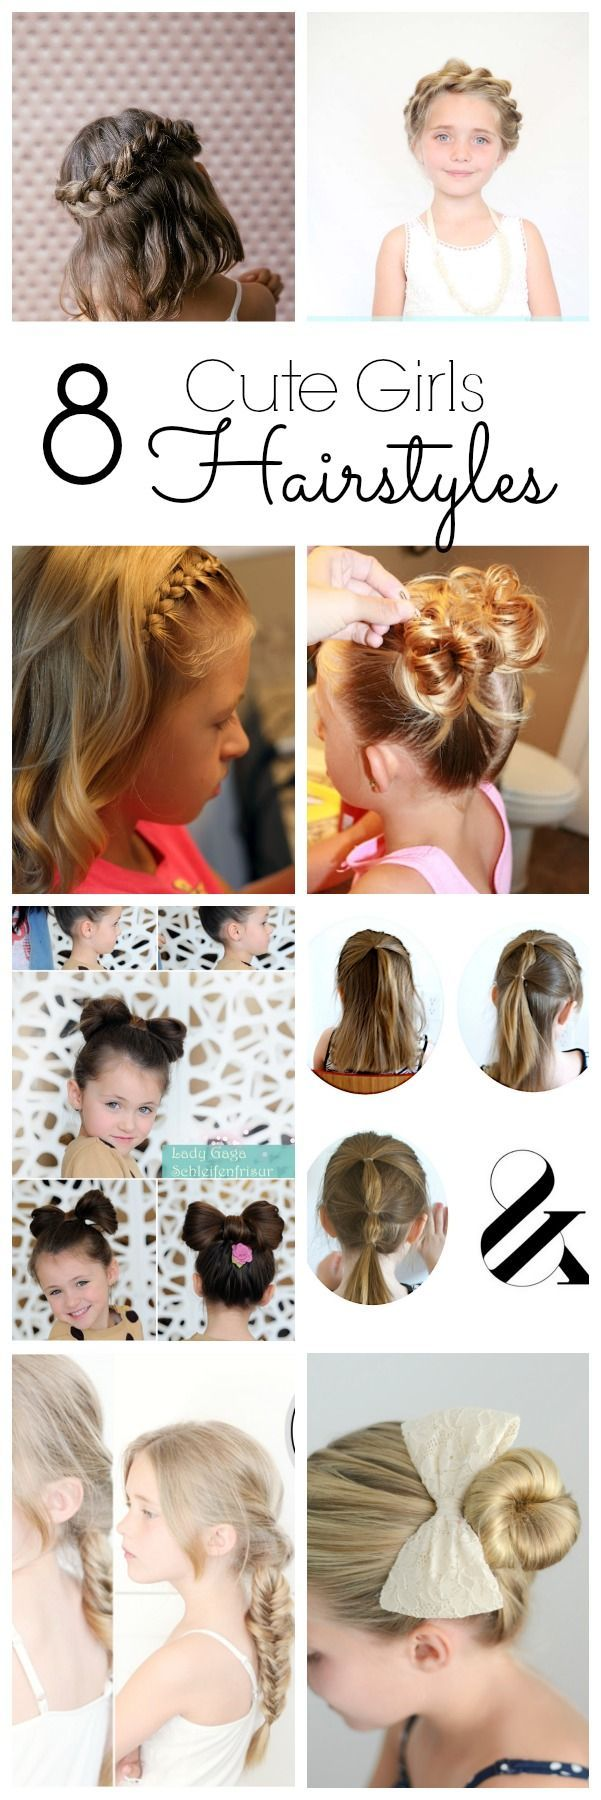 cute girls hairstyles girl hairstyles hair style and children